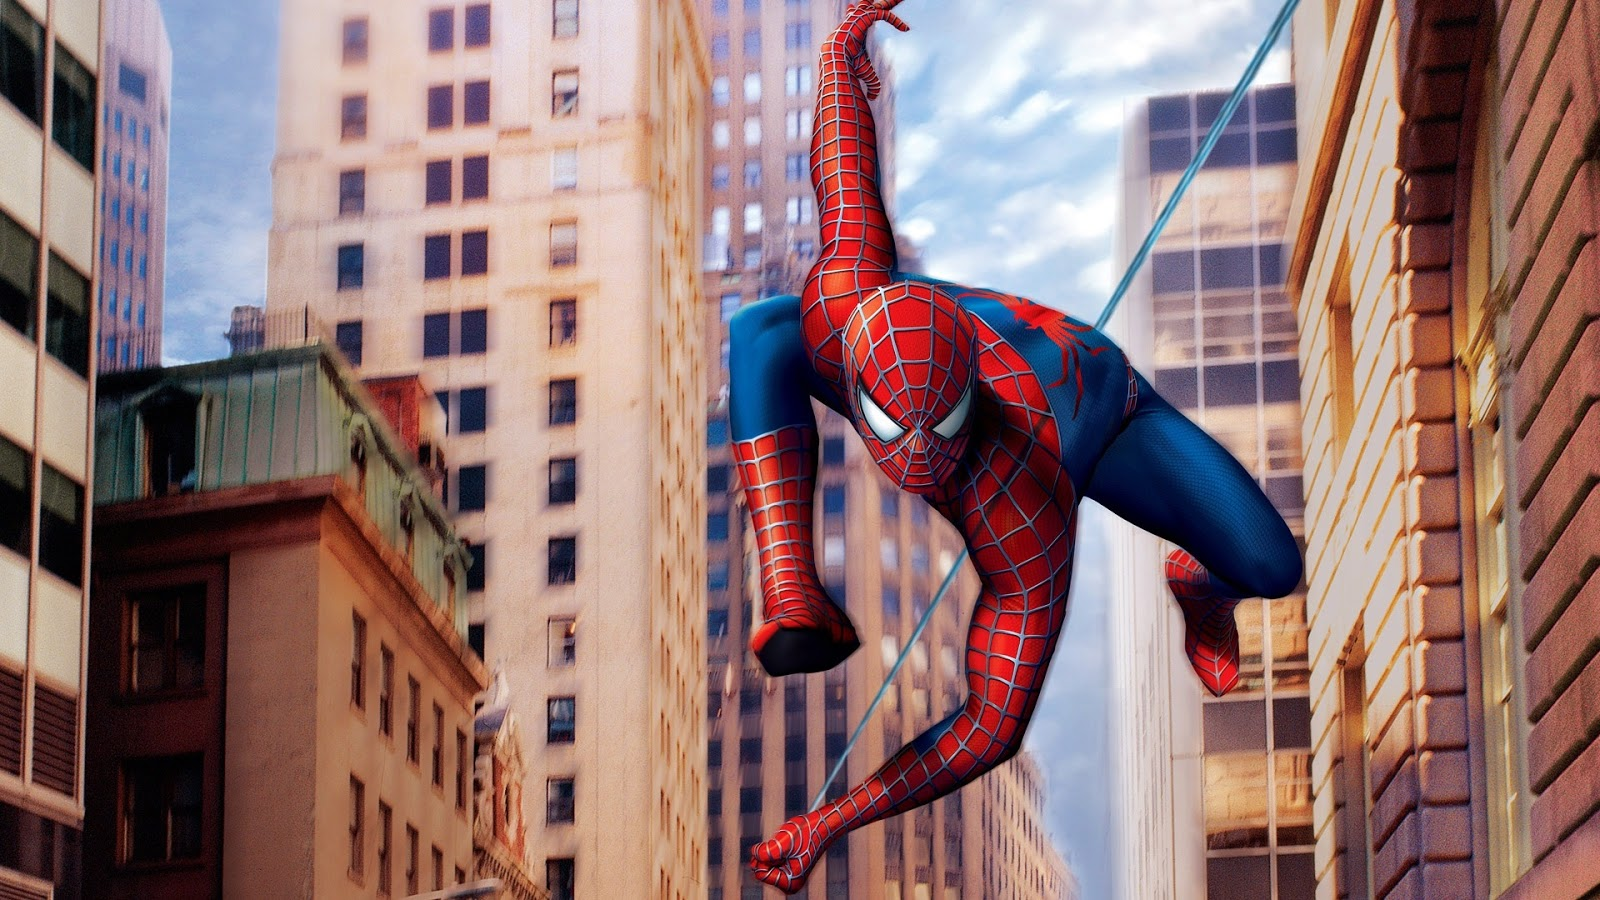 Free HD Spiderman Pictures New